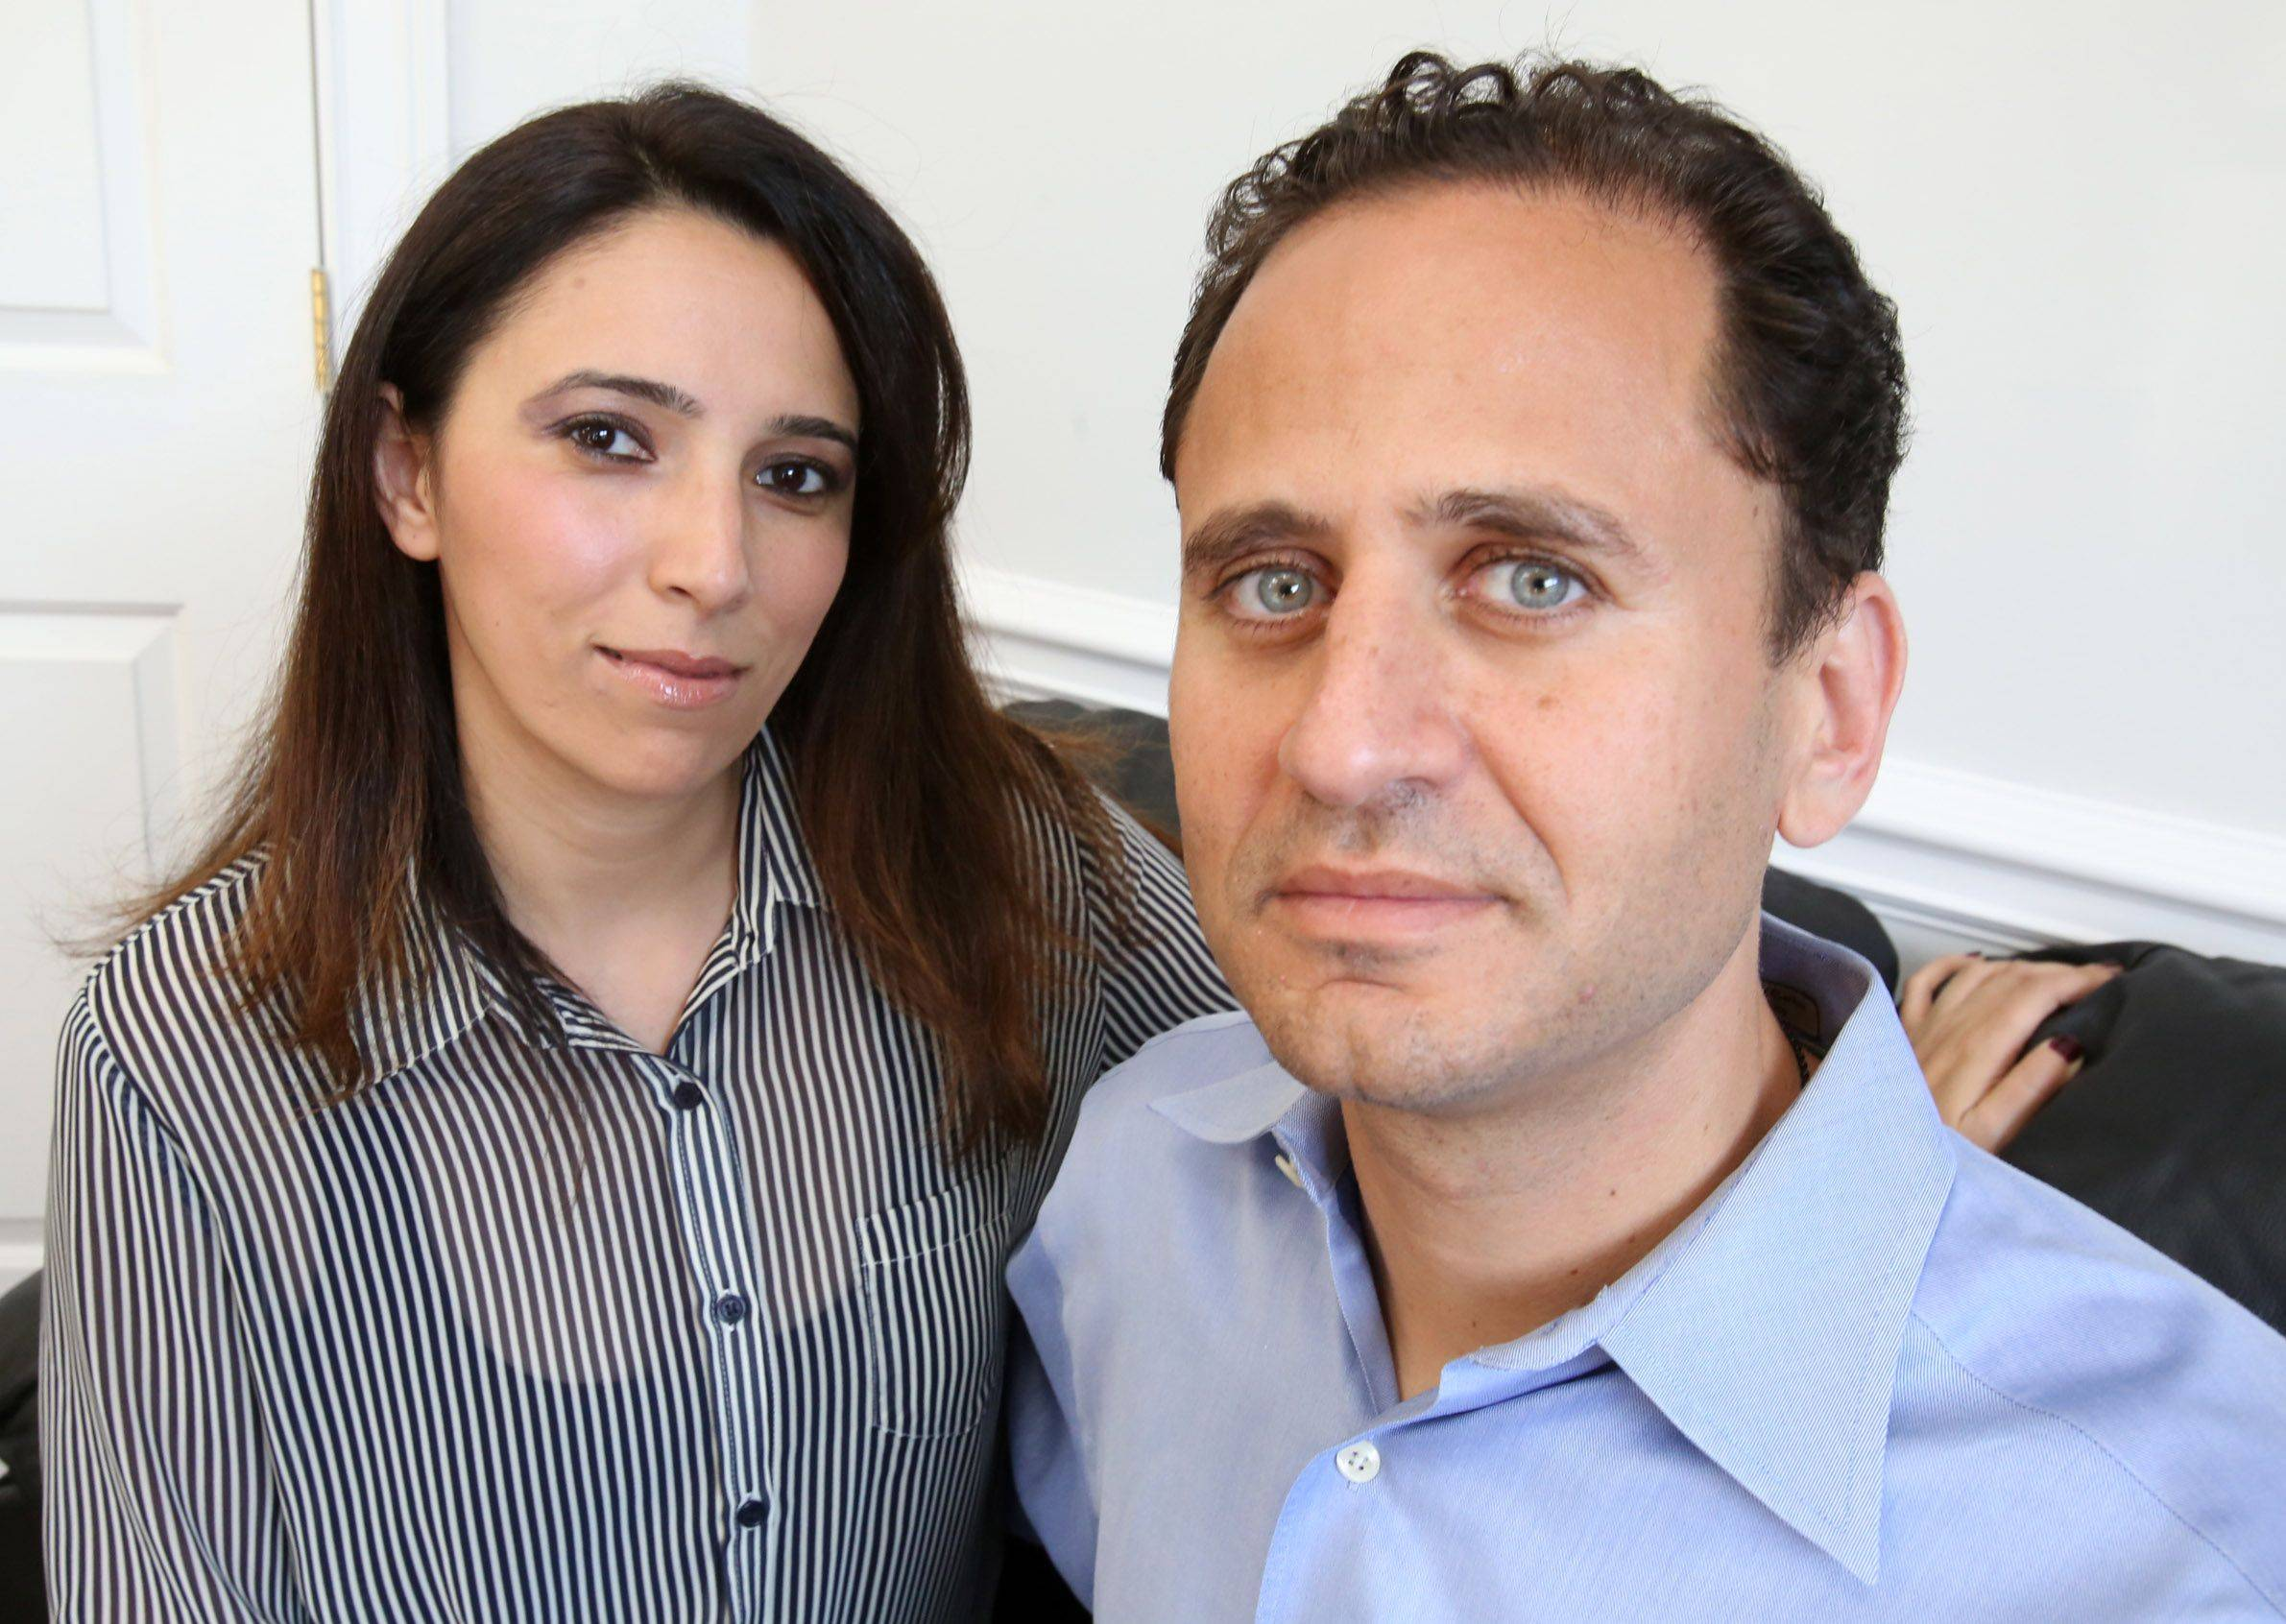 Lina and Aladean Attar, a Syrian-American couple from Lake Forest, talk about the humanitarian crisis in Syria and their fears for family members and countrymen.